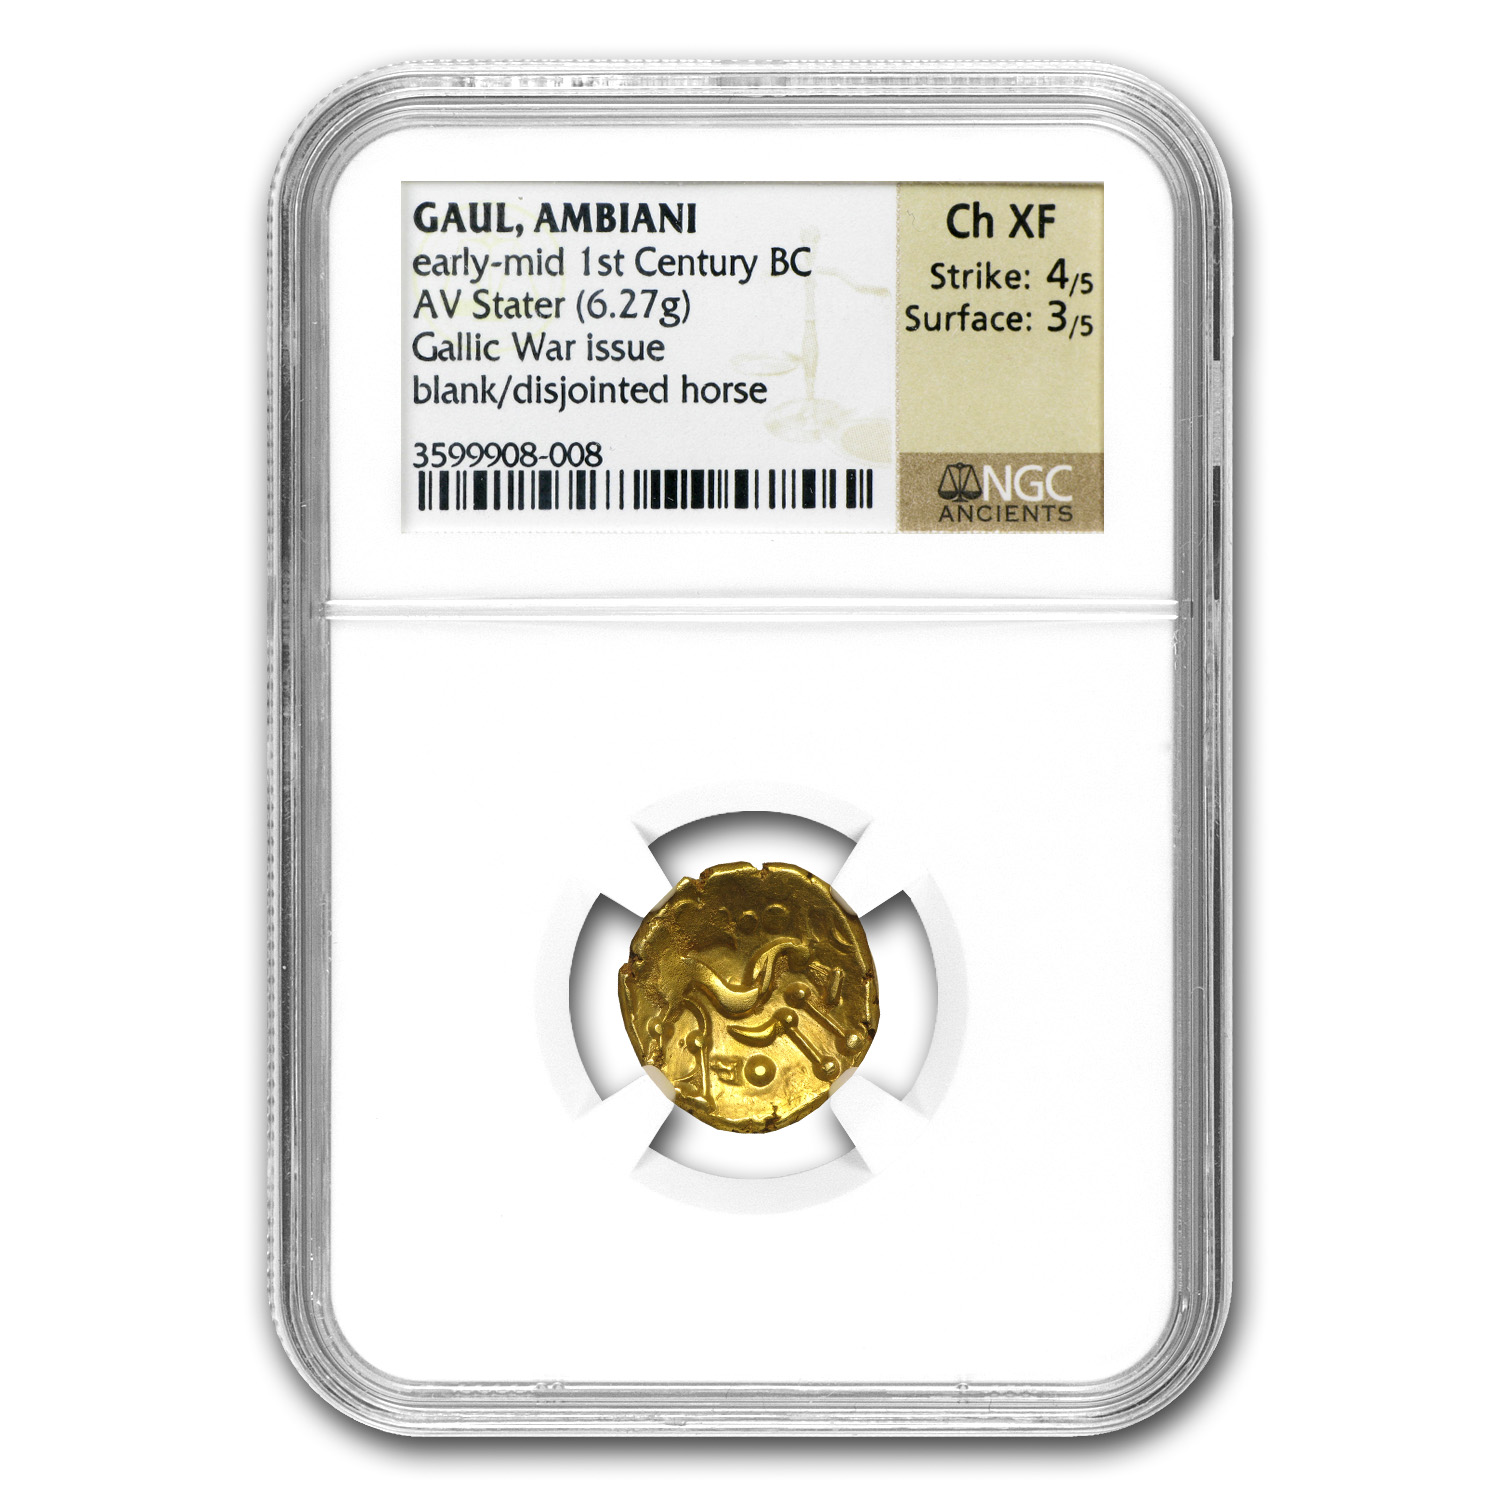 Gaul Ambiani AV Gold Stater 1st Cent BC NGC ChXF